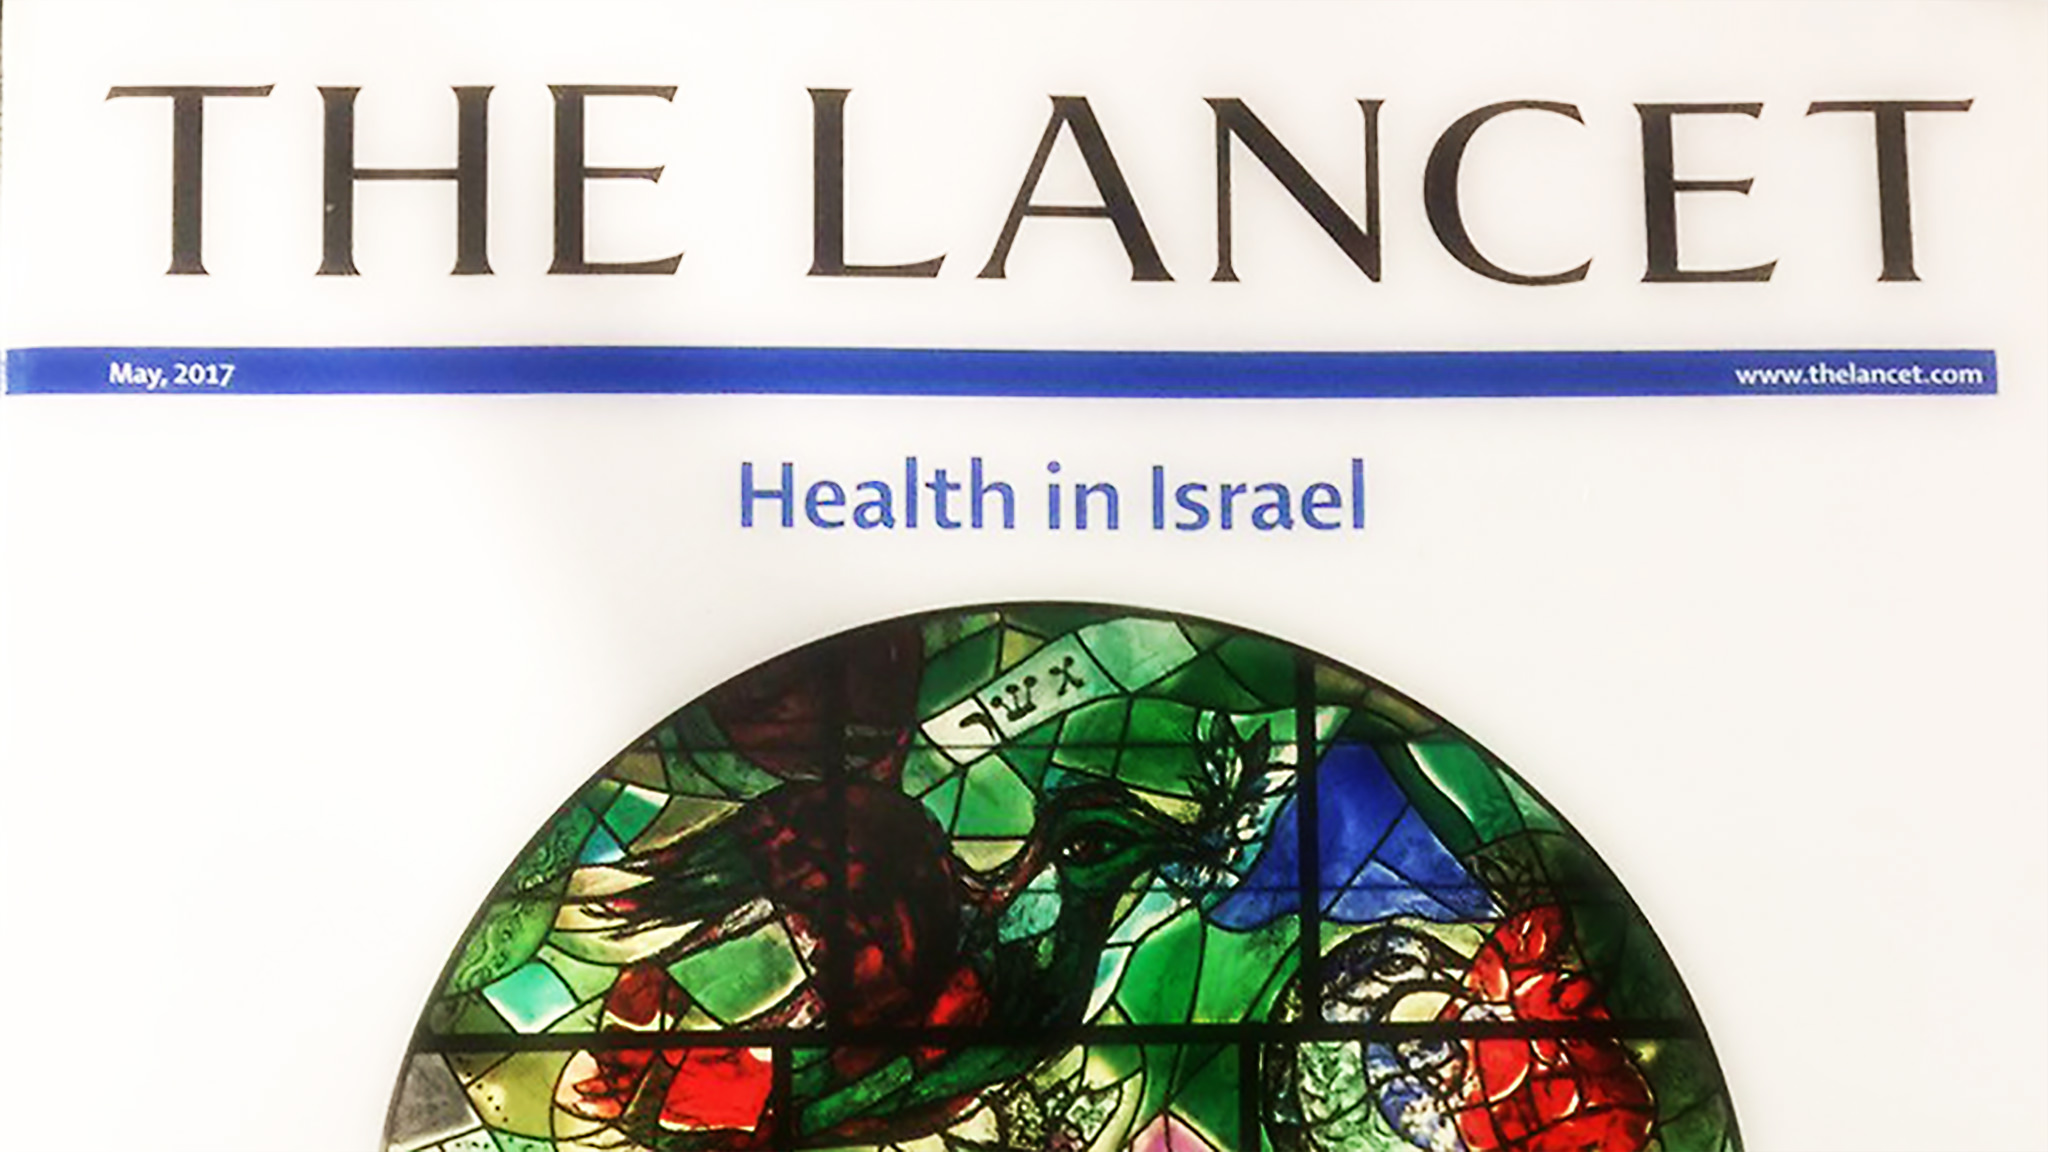 Anti-Israel propaganda reversed in leading medical journal